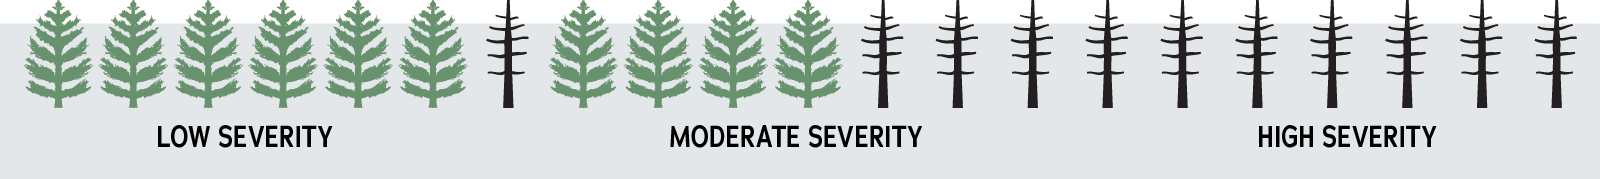 low severity: 6 out of 7 trees are alive. Moderate severity: 4 out of 7 trees are alive. High severity: all trees are dead.